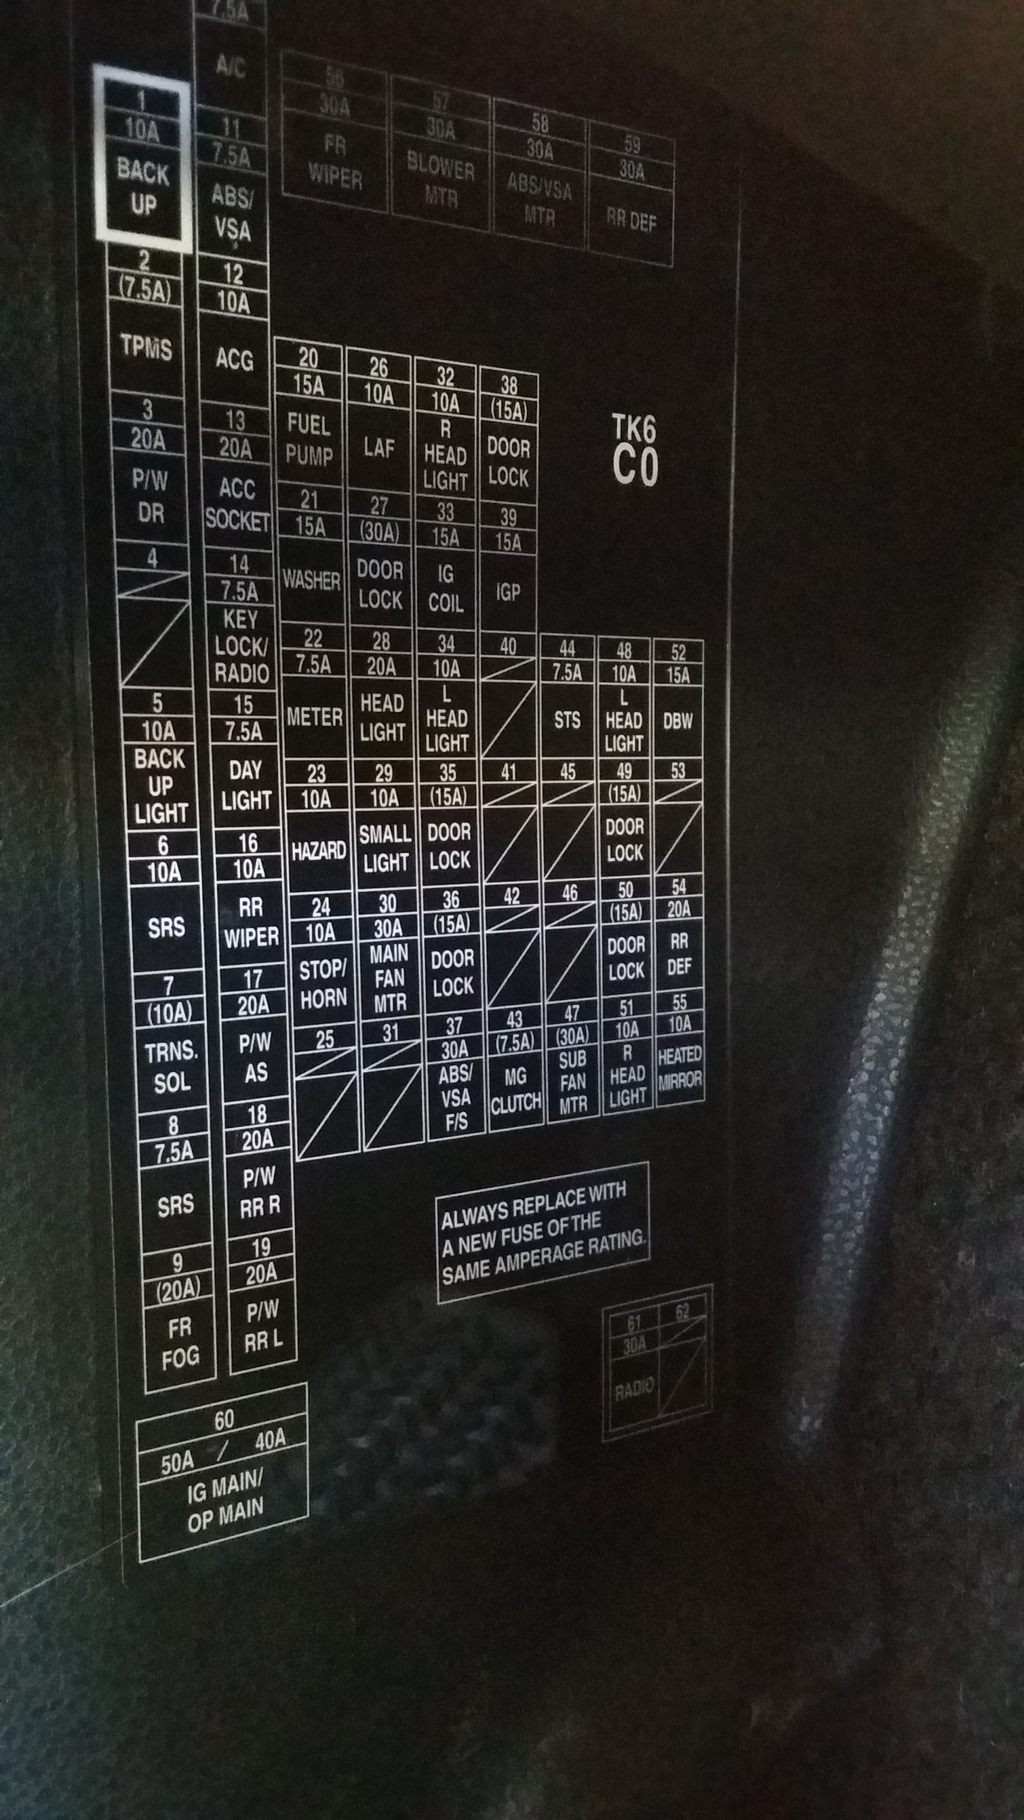 hight resolution of www fitfreak net forums attachments 2nd generation 2013 honda fit fuse diagram